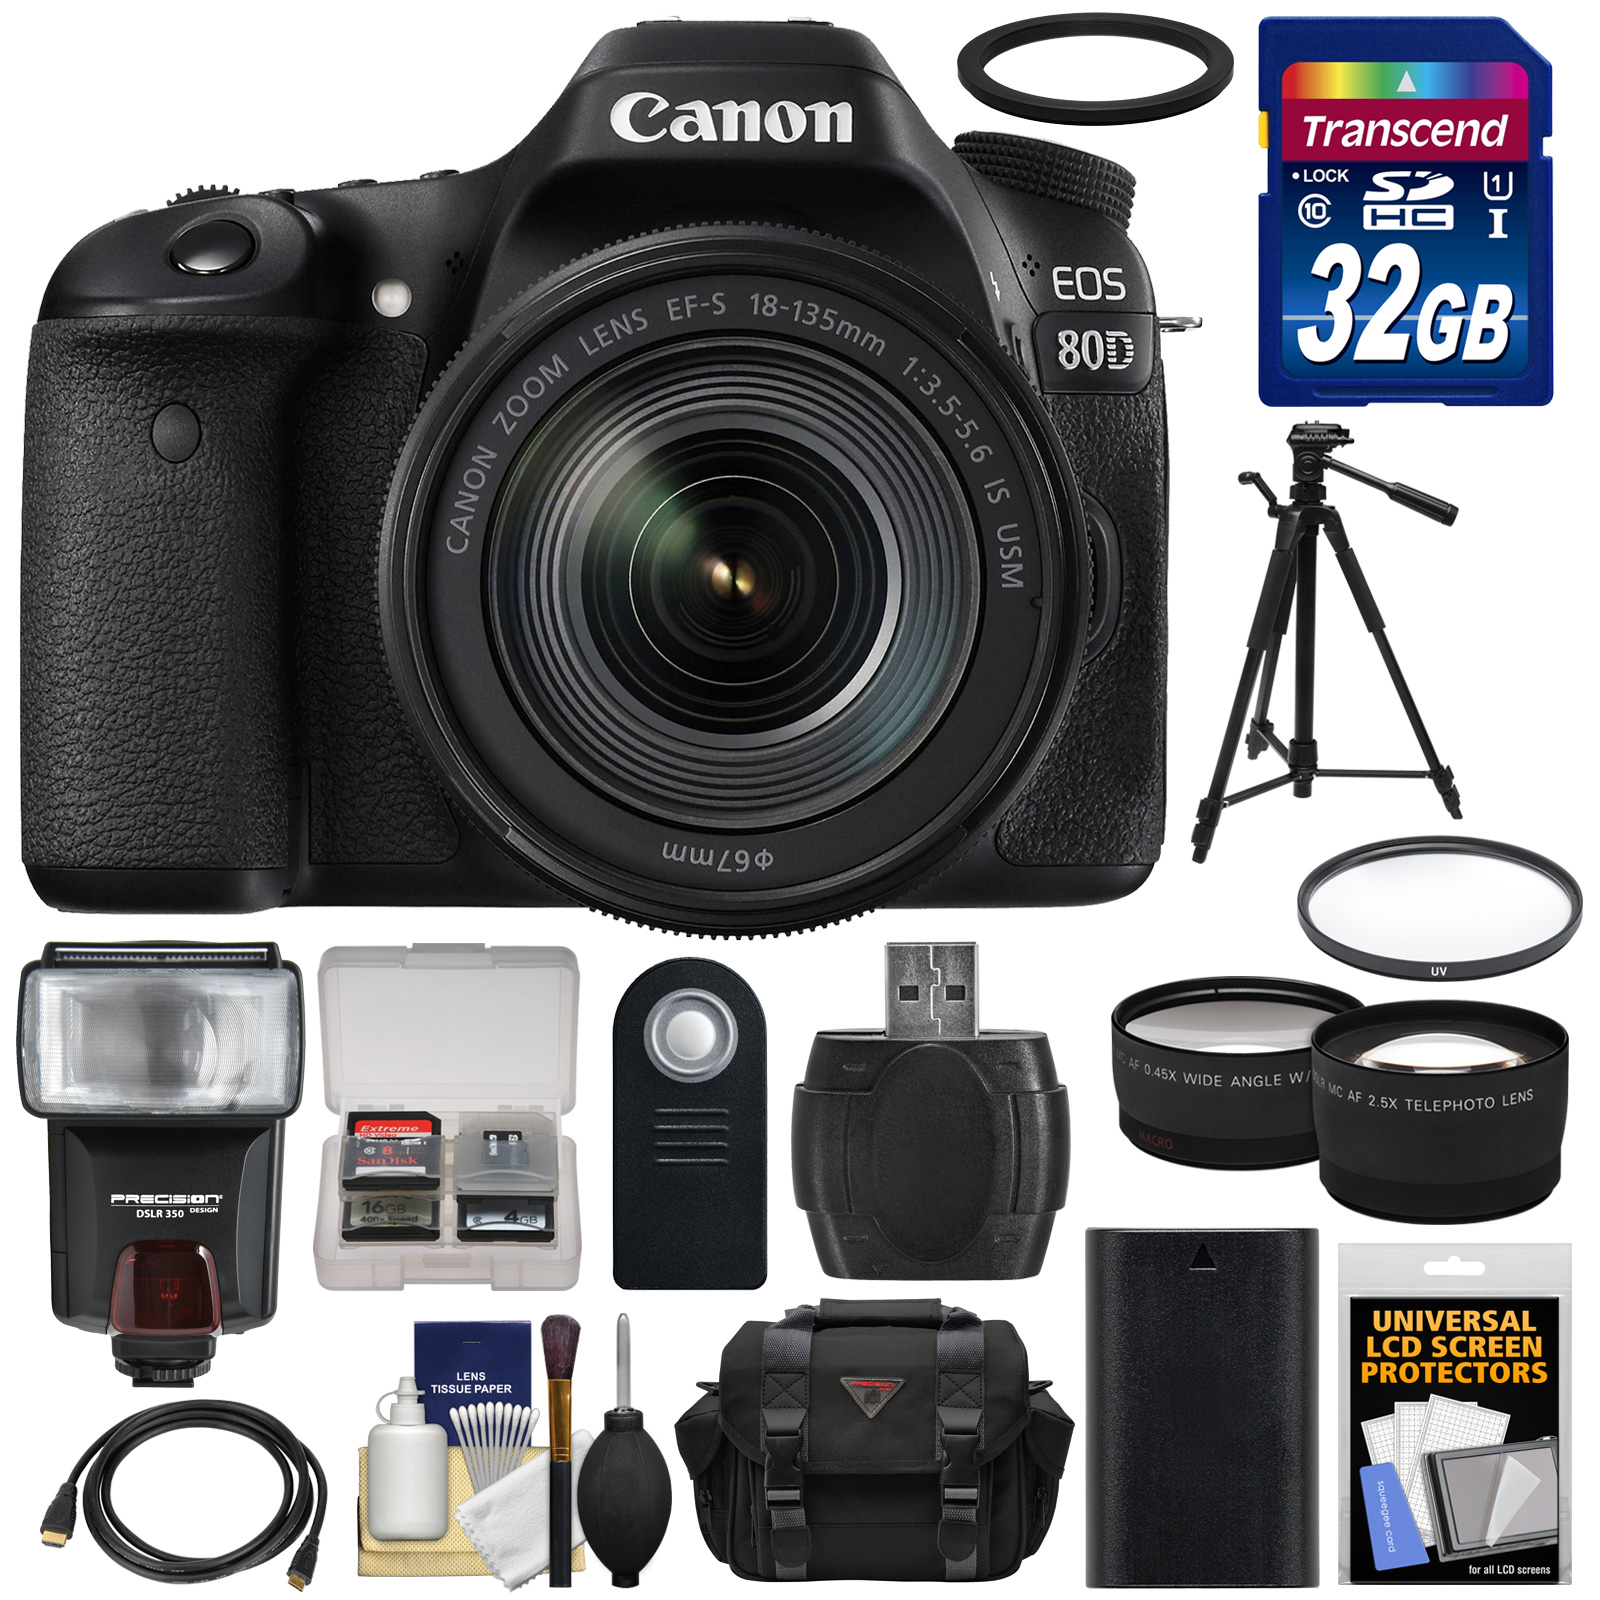 Canon EOS 80D Wi-Fi Digital SLR Camera & EF-S 18-135mm IS USM Lens with 32GB Card + Battery + Case + Filter +... by Canon